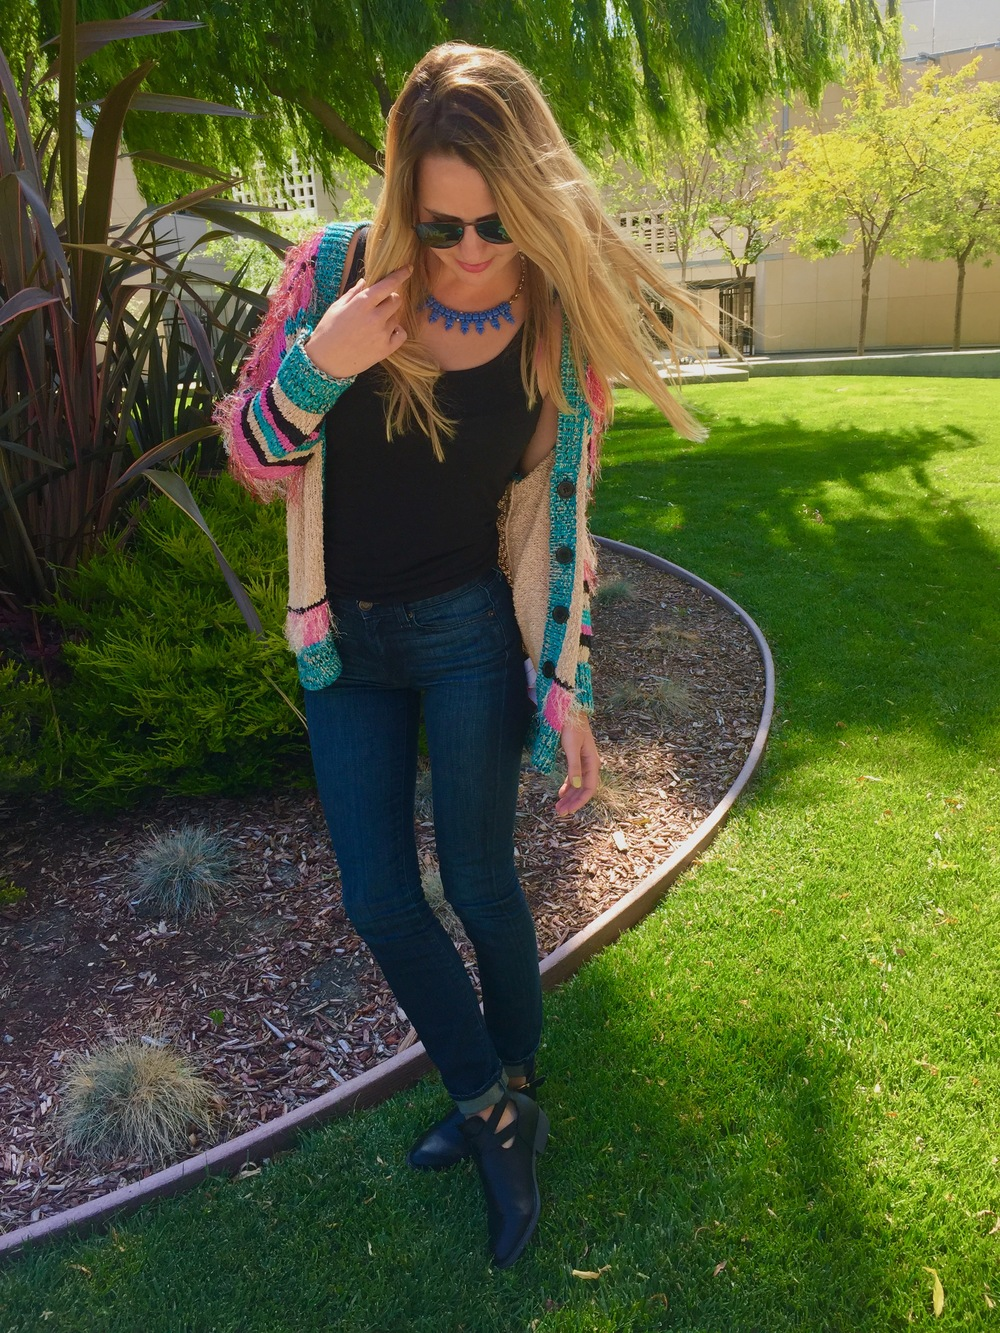 Sweater: Mink Pink; Sunglasses: Nordstrom's; Tank: Touvre; Jeans + Necklace: J.Crew; Booties: Target